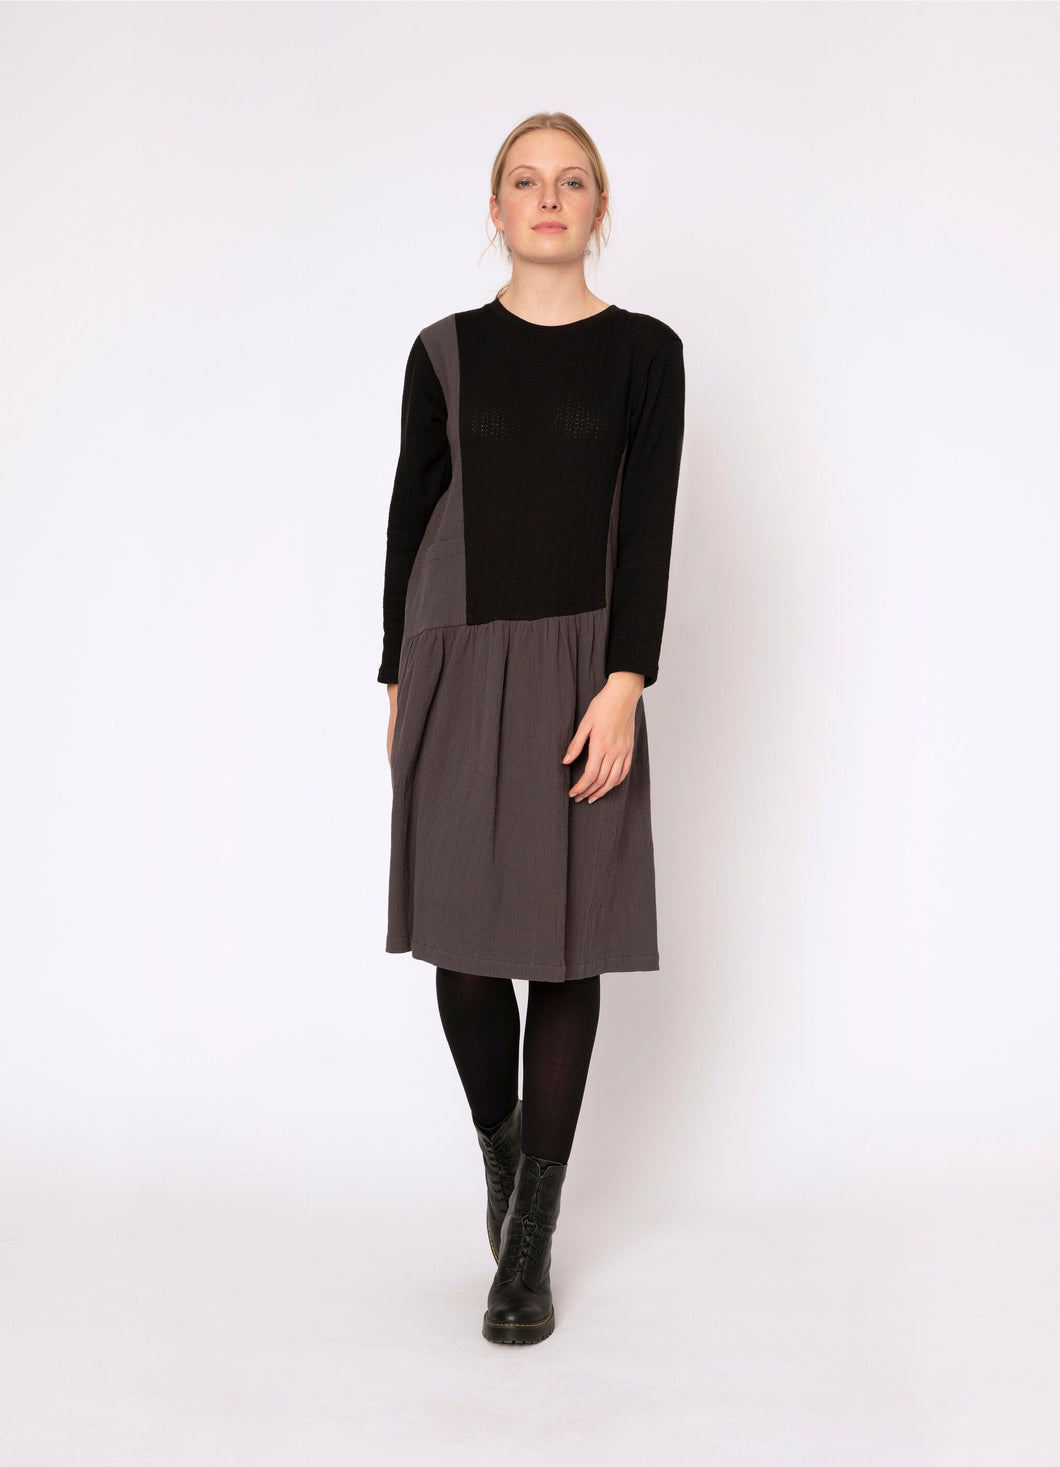 Blacklist Nova Black Charcoal Dress